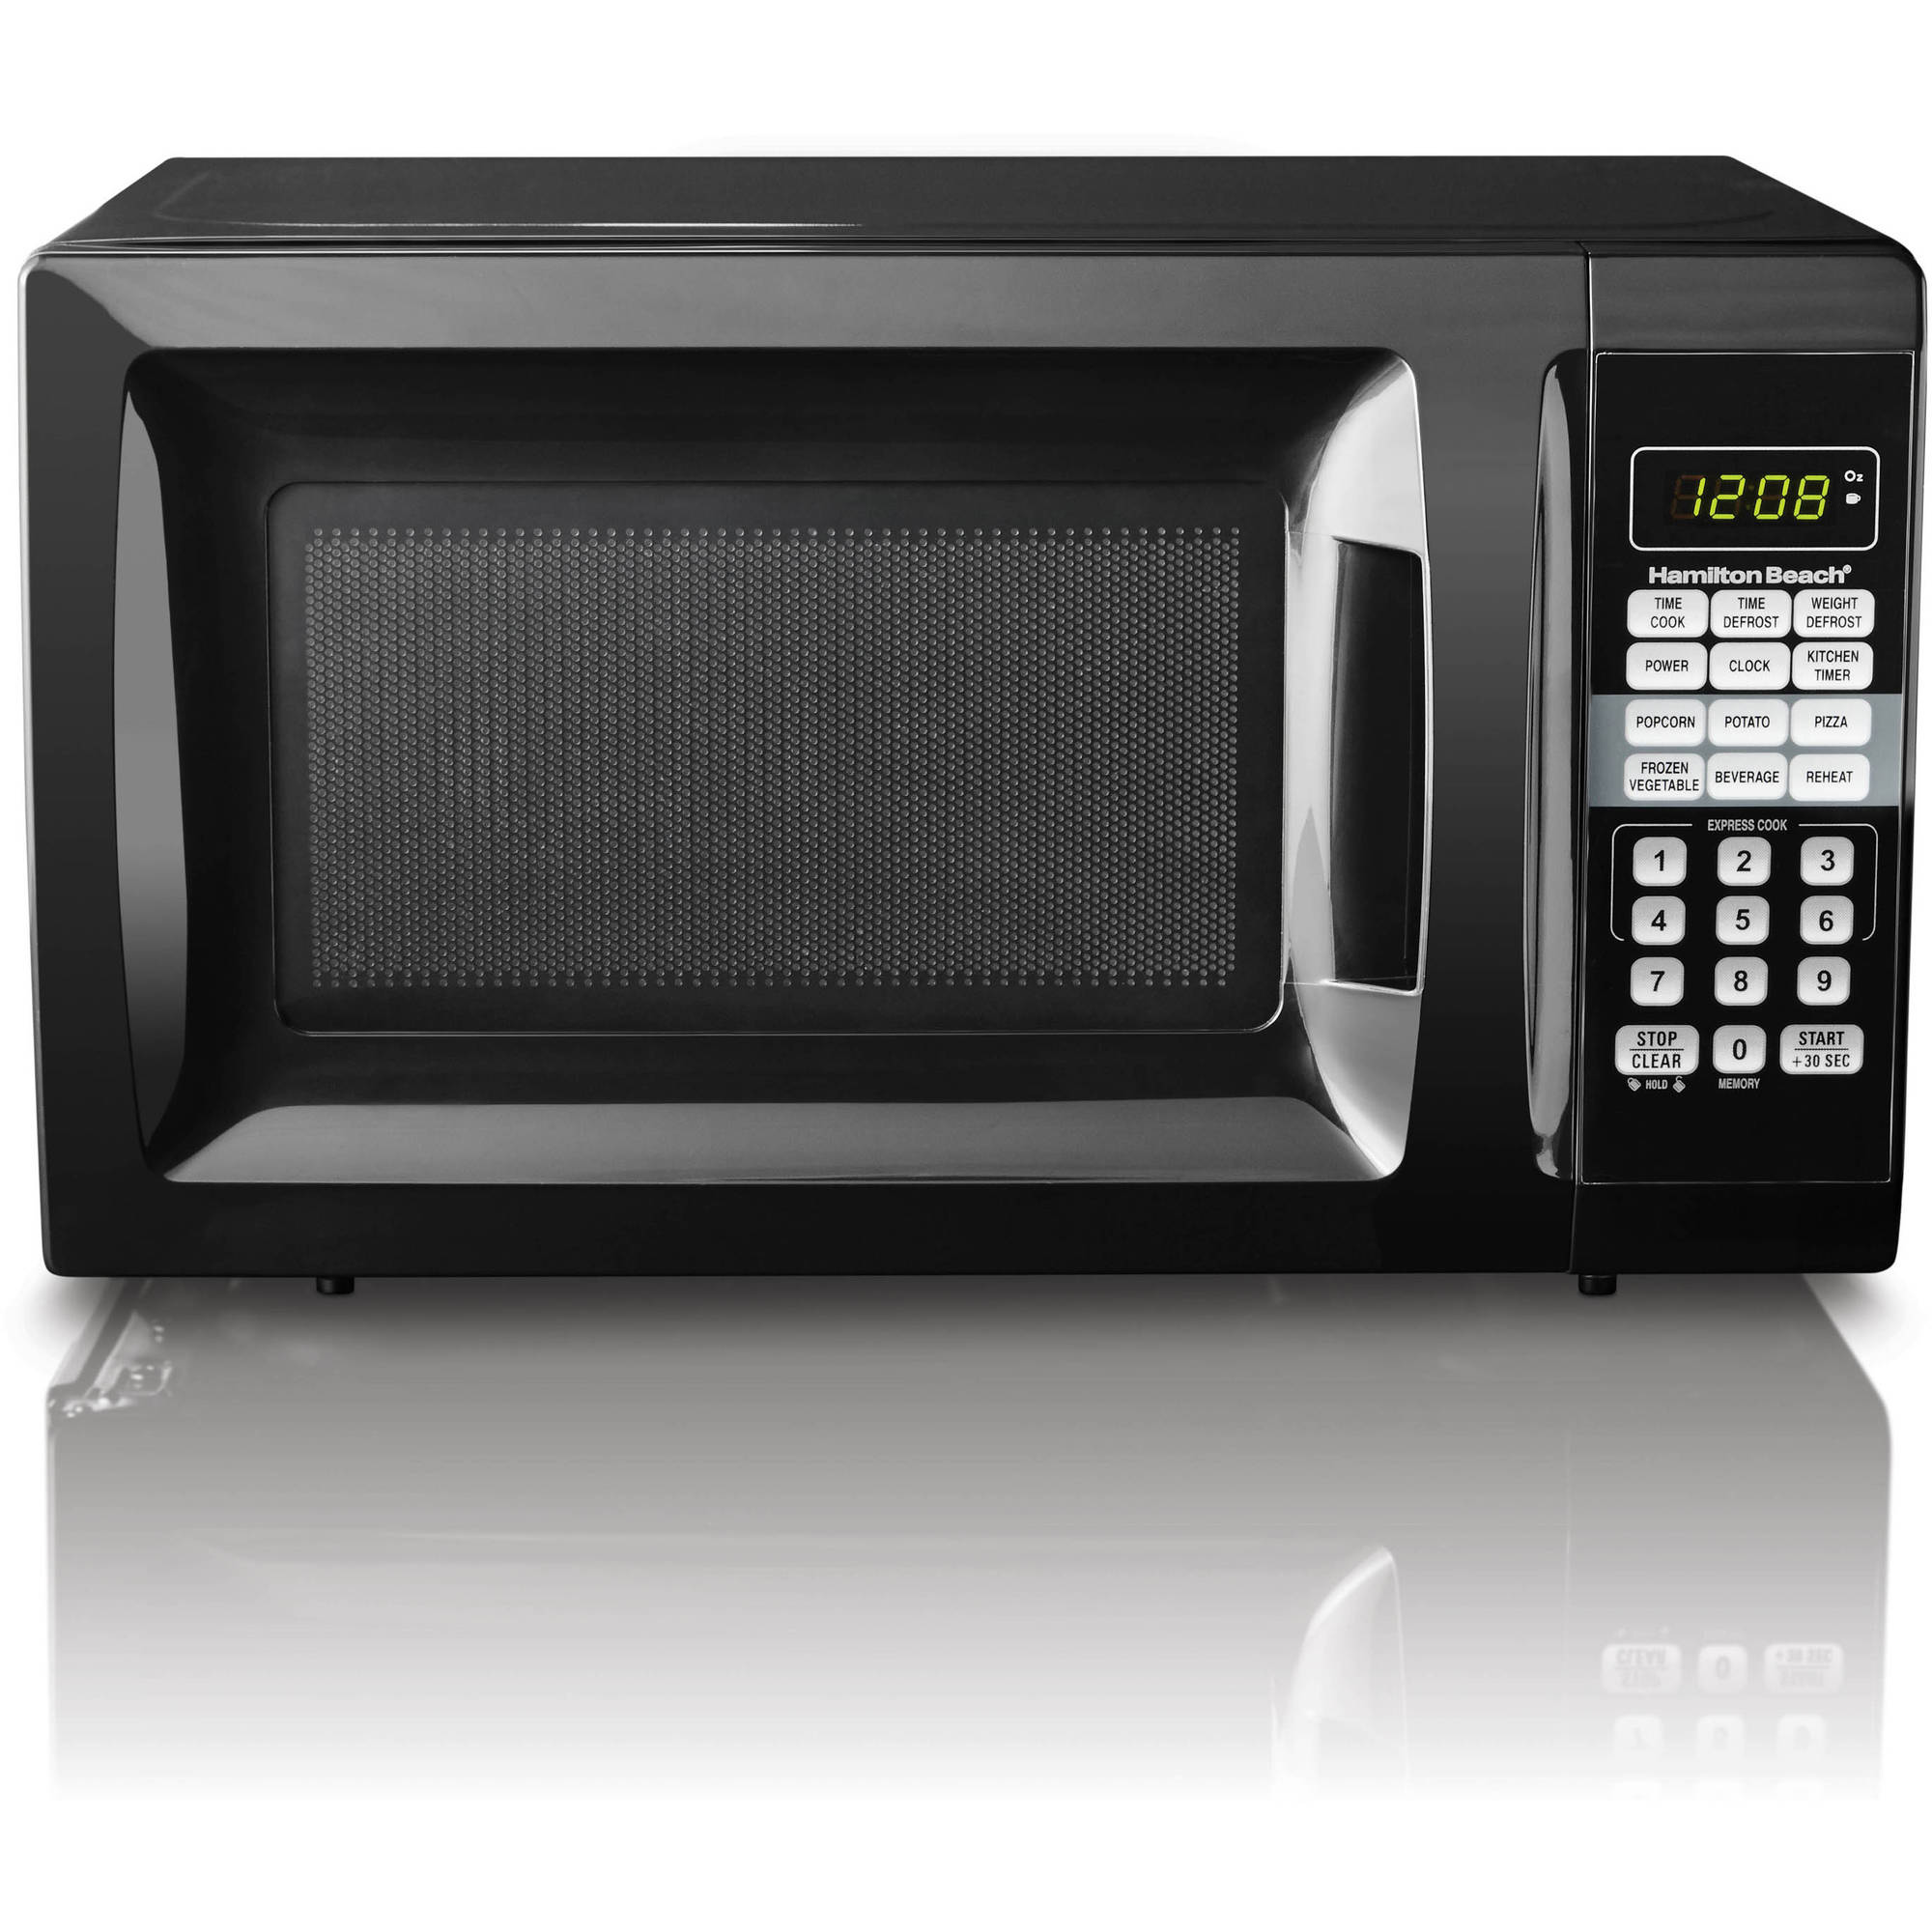 Hamilton Beach 0 7 Cu Ft Microwave Oven